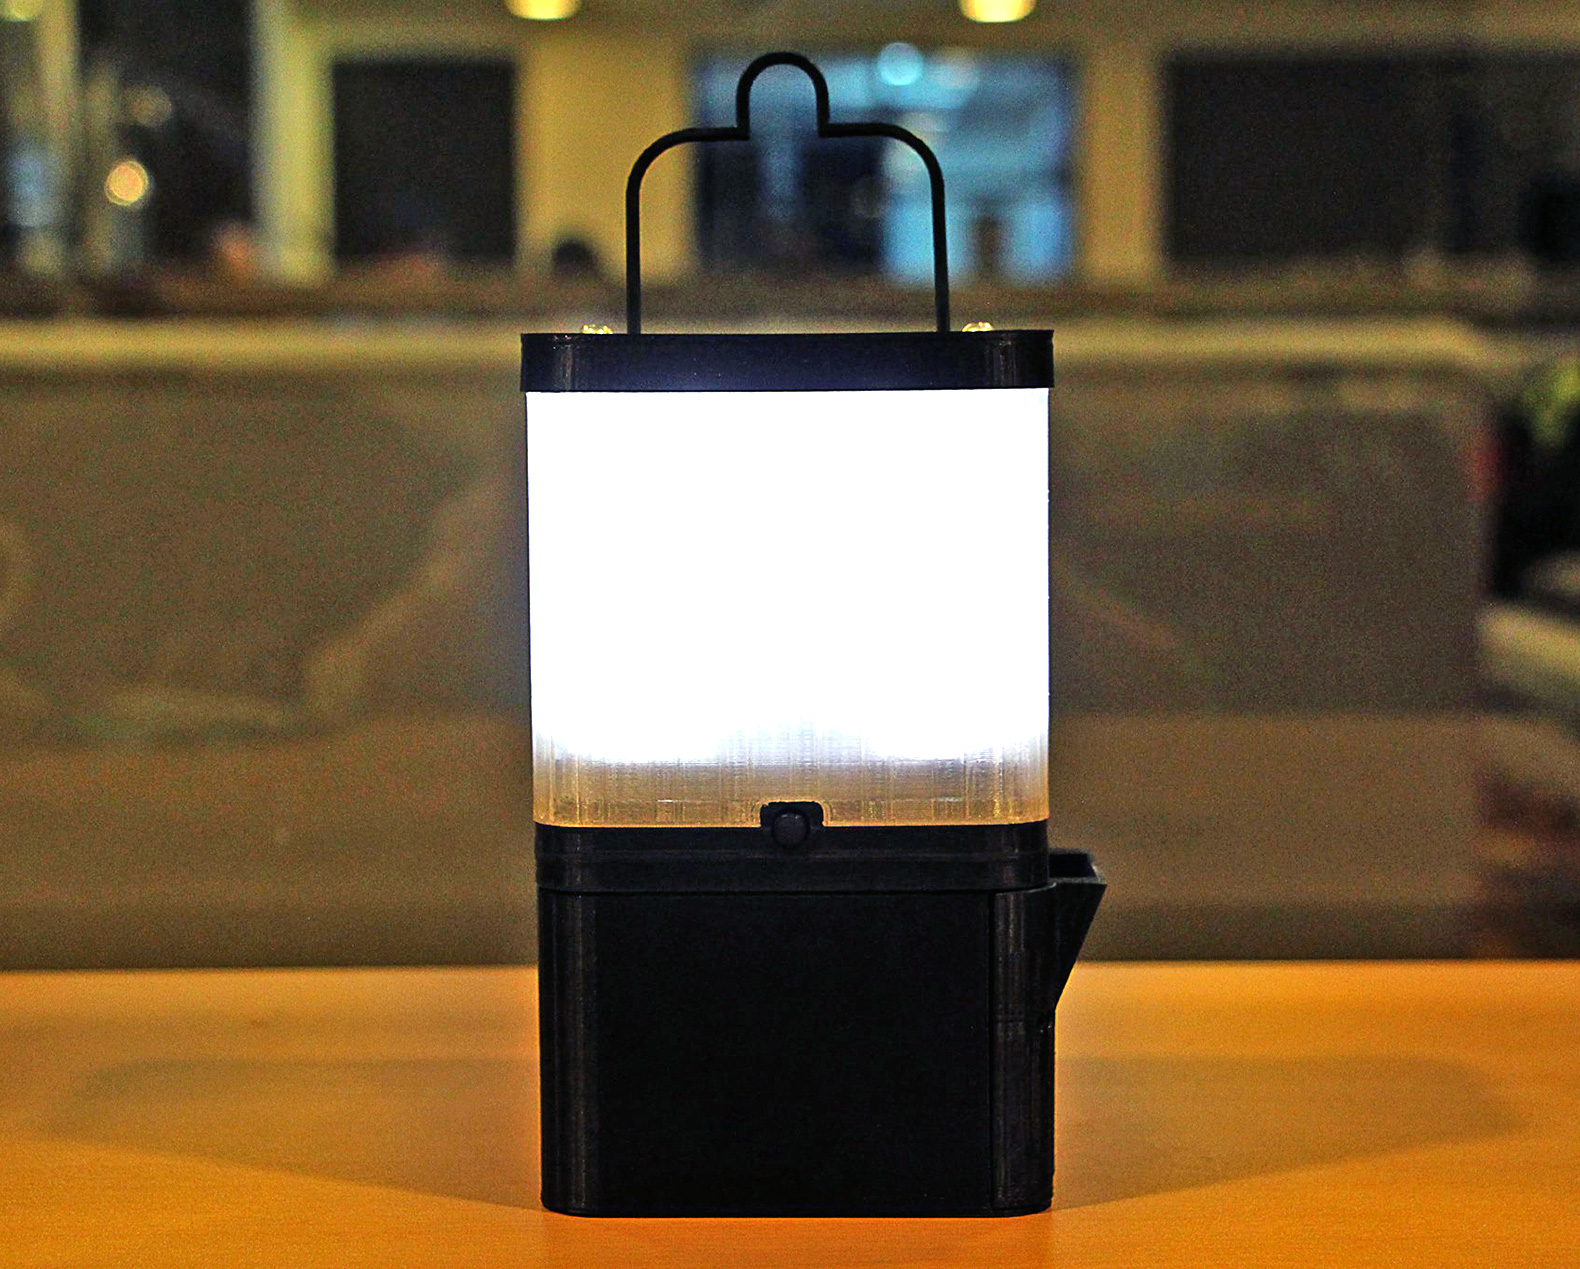 Salt Powered Lamp 8 Hours Of Light From 1 Glass Of